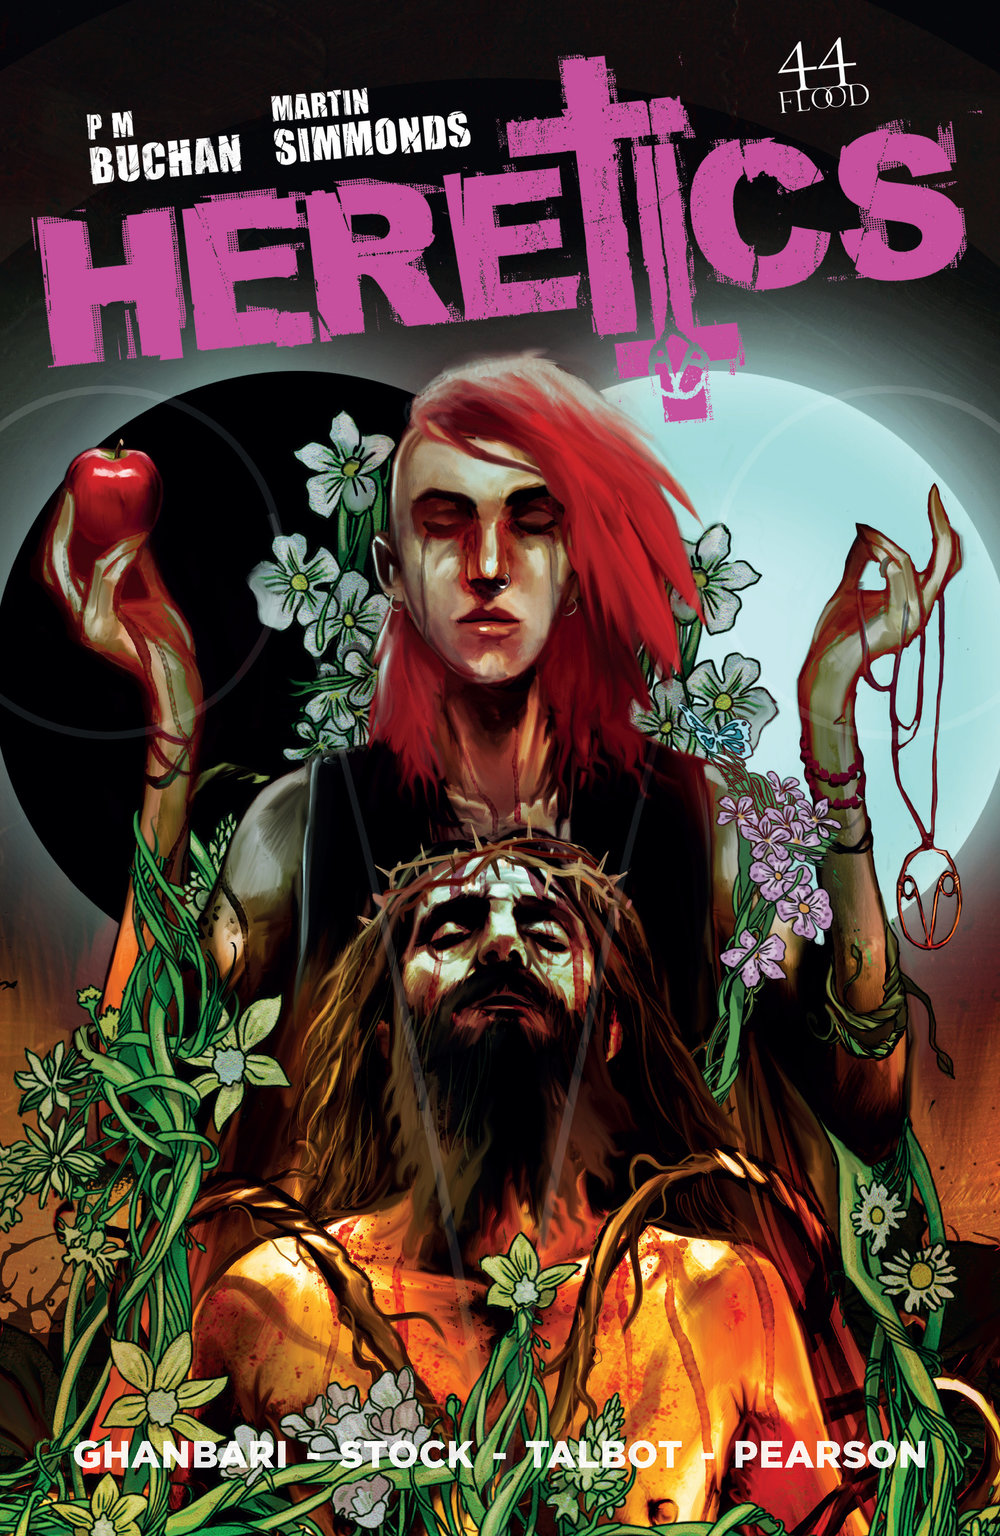 HERETICS Issue #0 cover